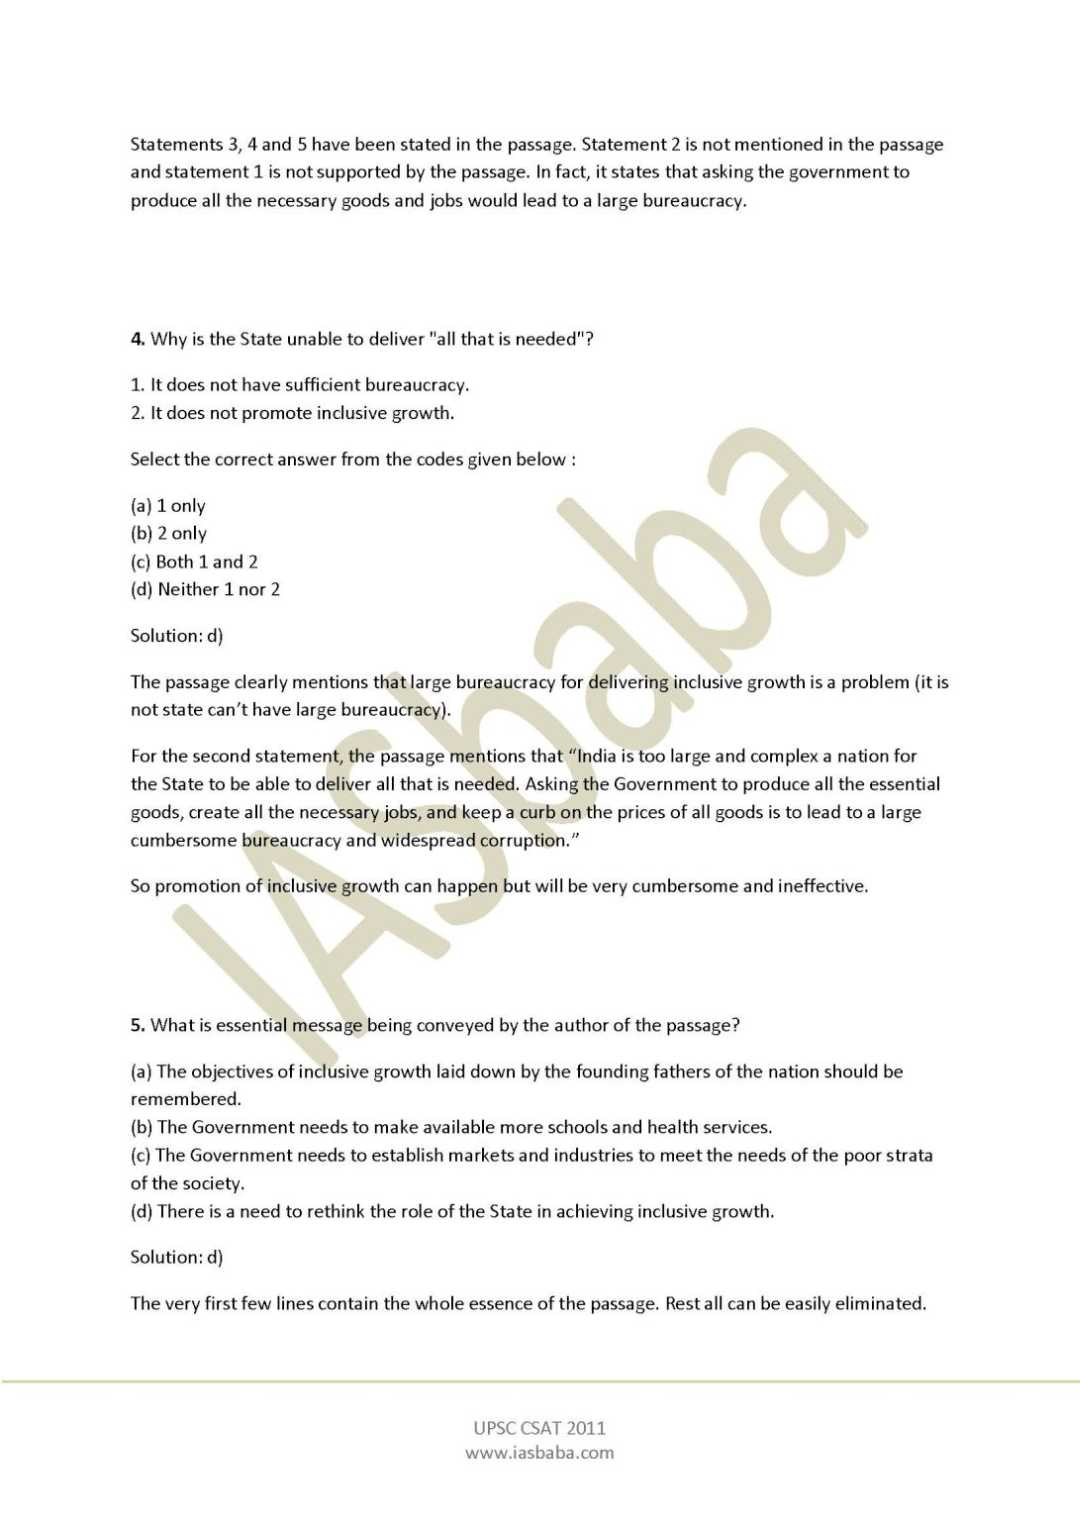 Essay on les miserables by victor hugo image 3